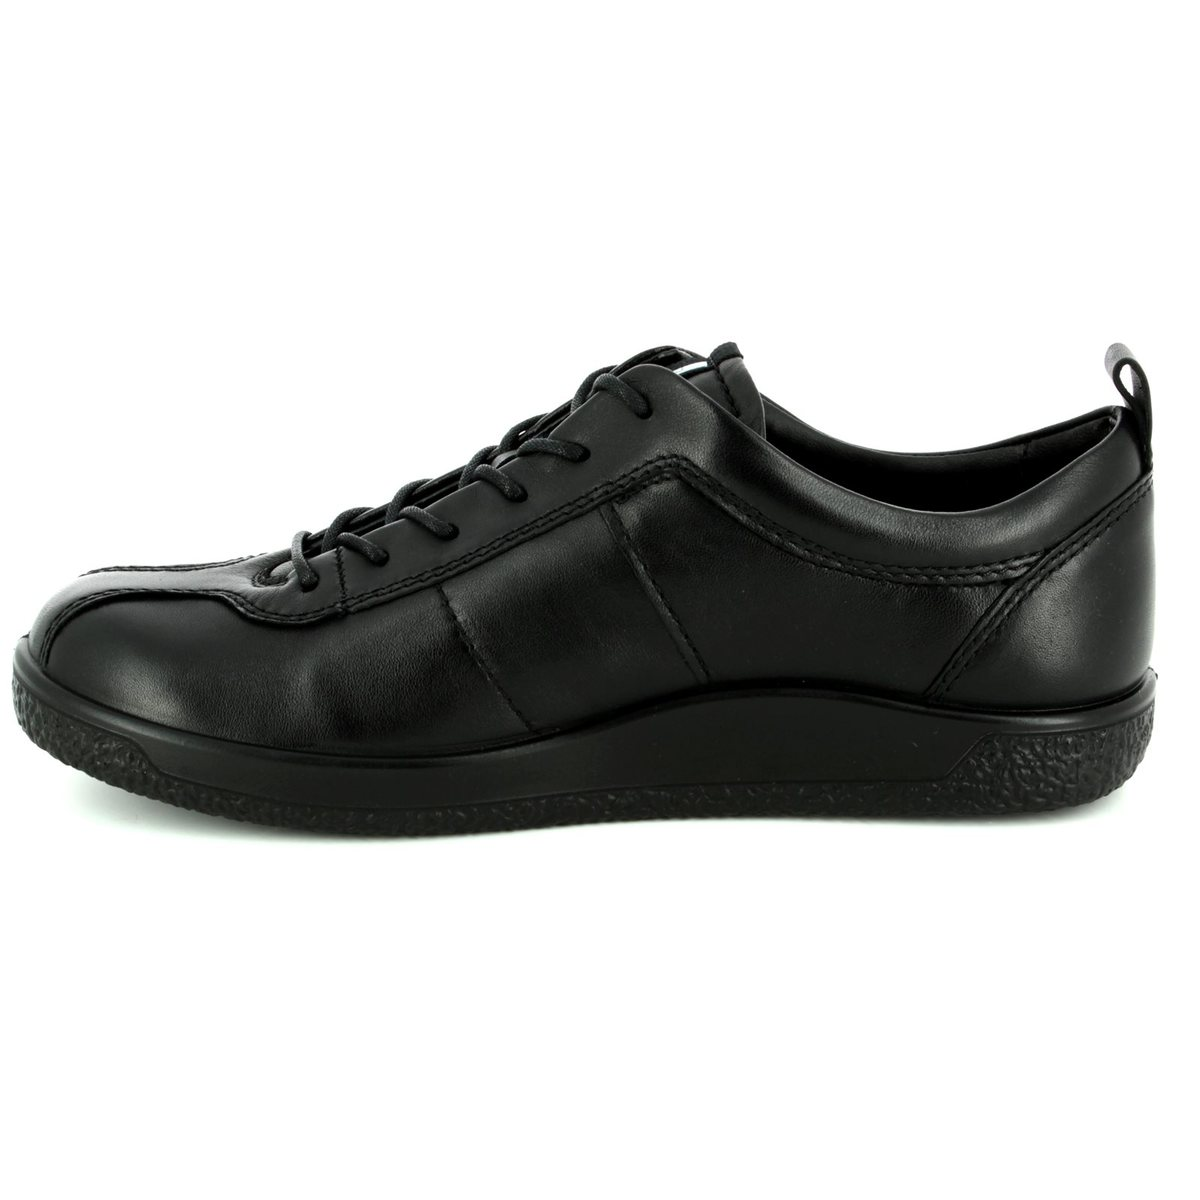 4c8b0e4adc 400503/01001 Soft 1 Ladies at Begg Shoes & Bags